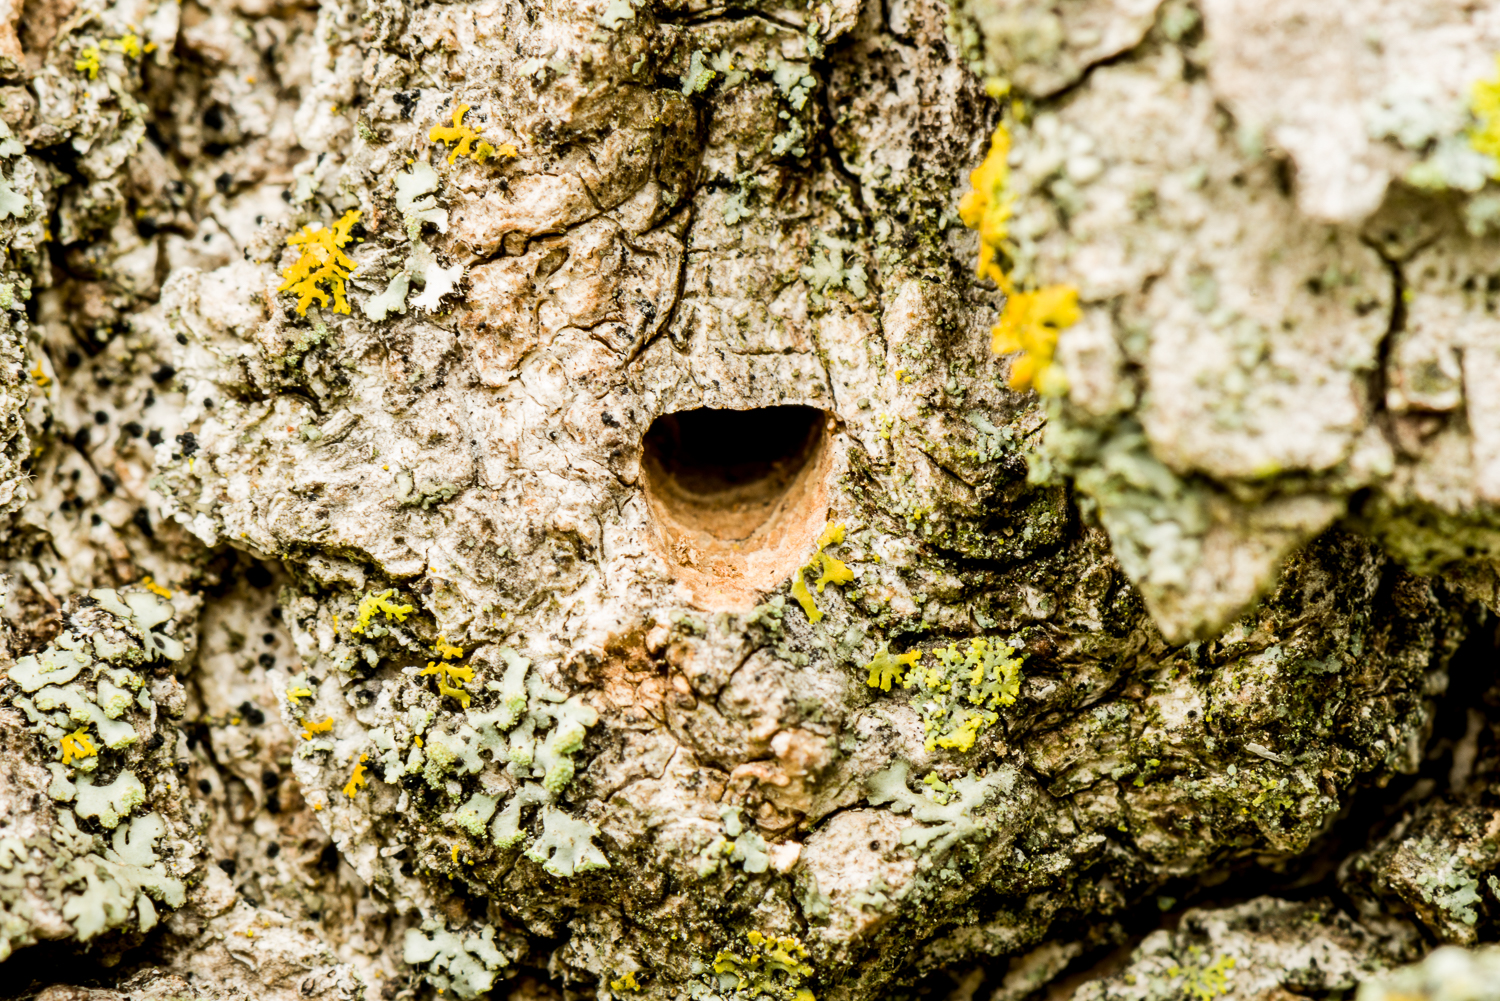 Emergence hole of emerald ash borer in a white ash tree